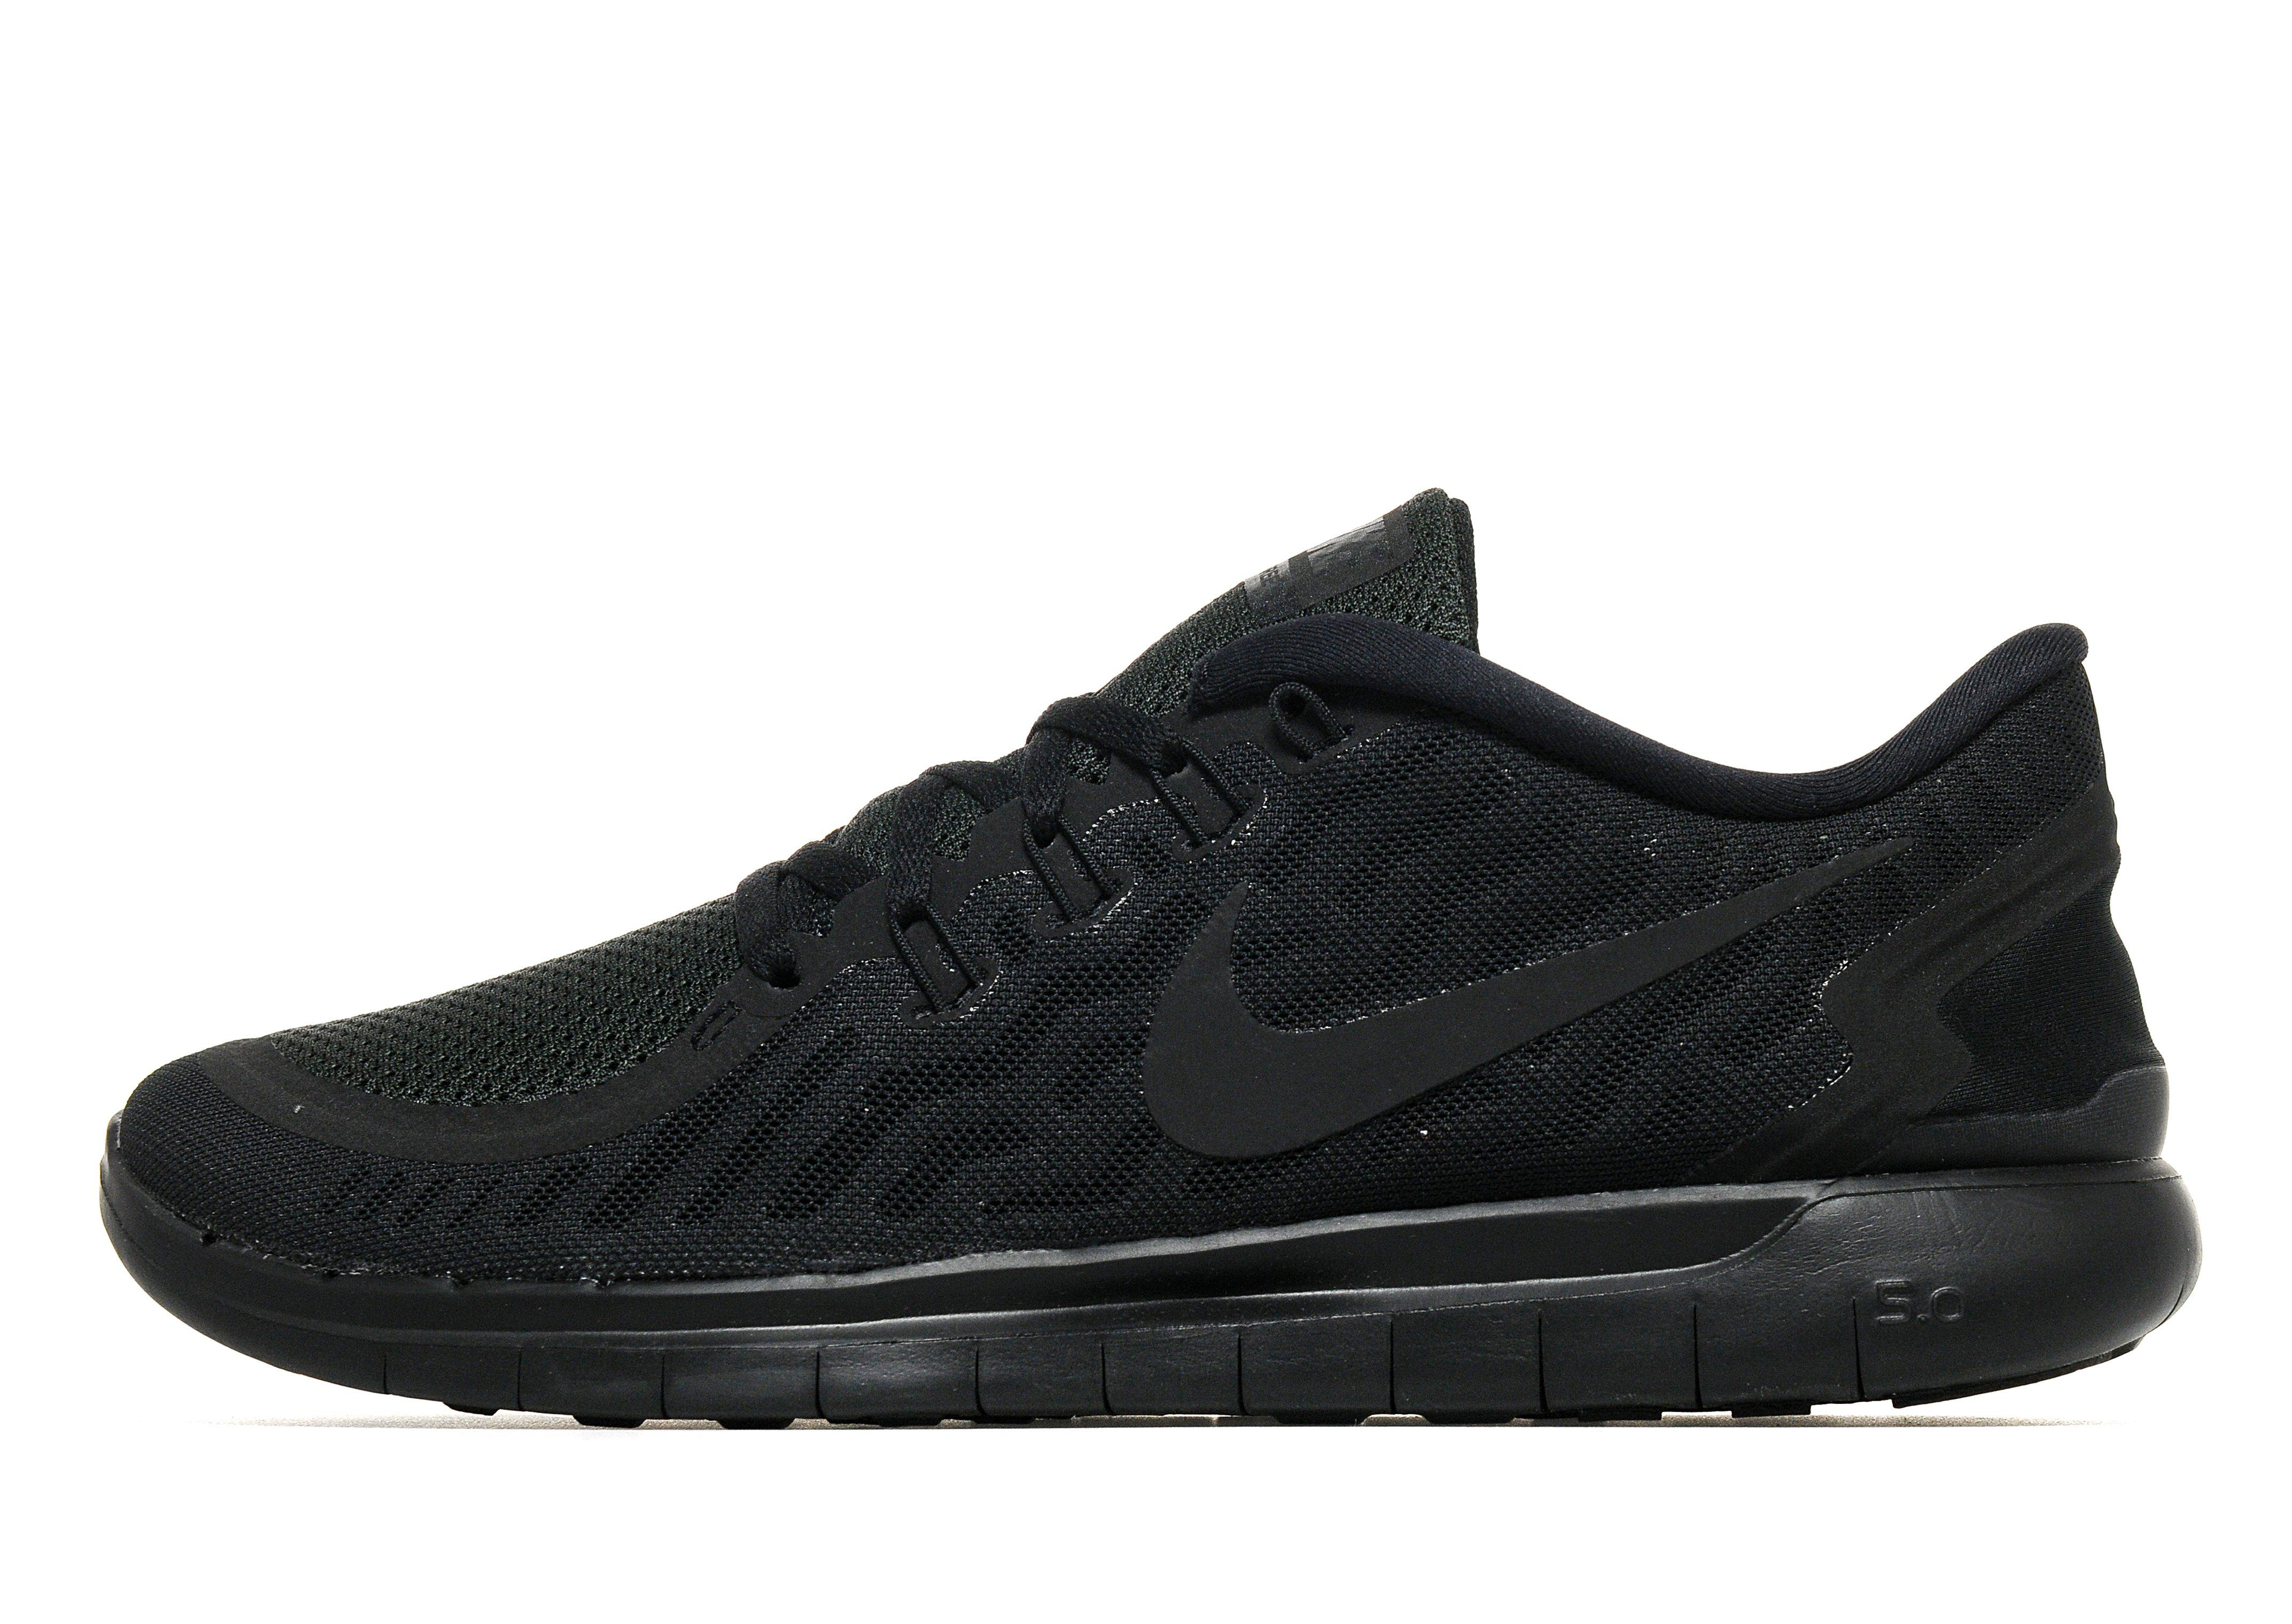 official photos 9fa60 b4c94 nike lunarglide youth mens five finger shoes